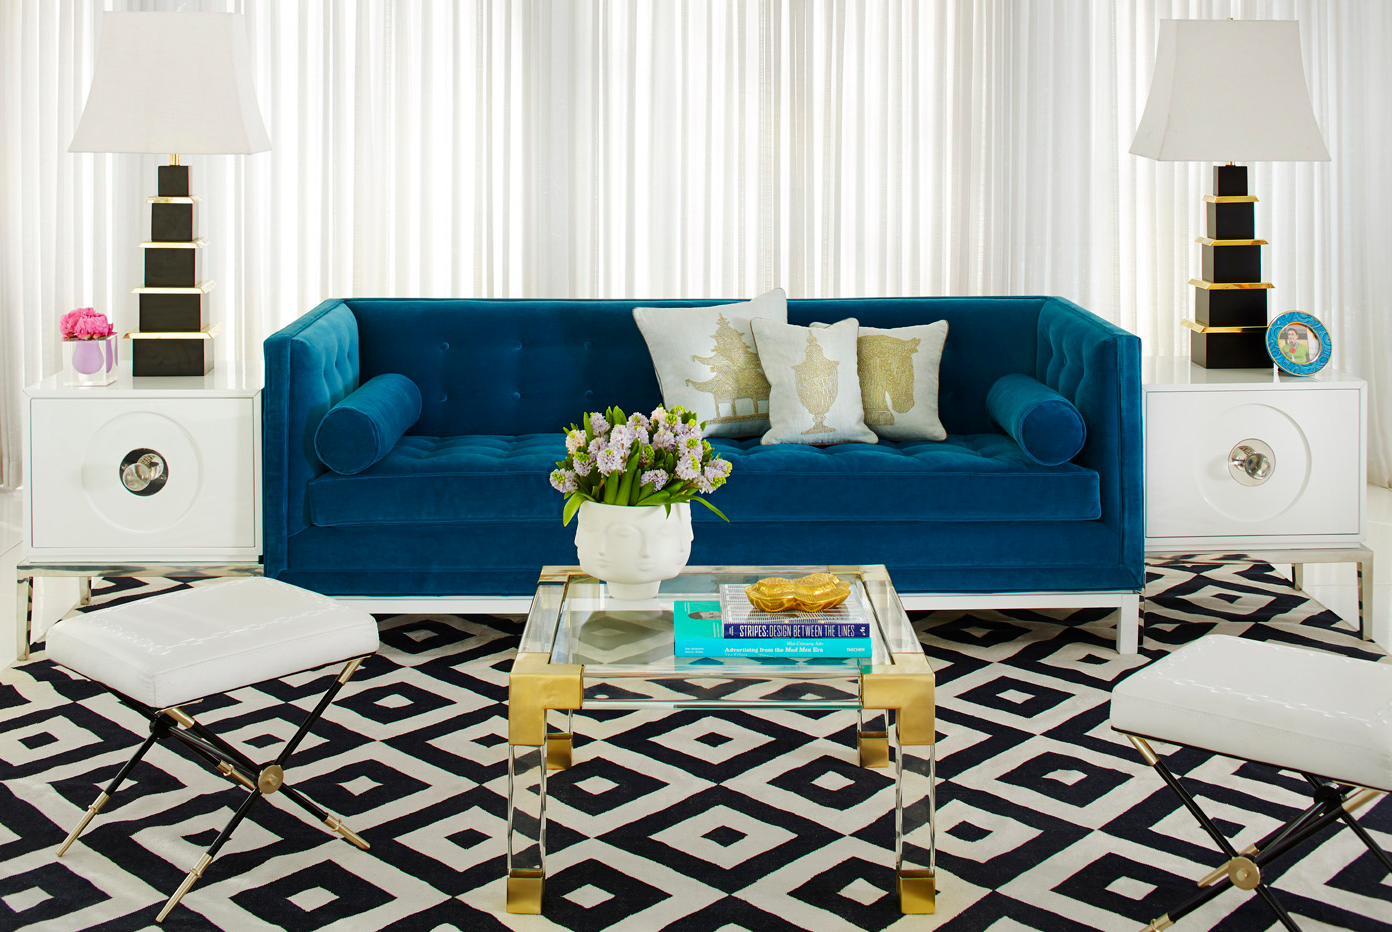 3.Venice-Peacock-Jonathan-Adler-sofa-for-hollywood-style-living-room